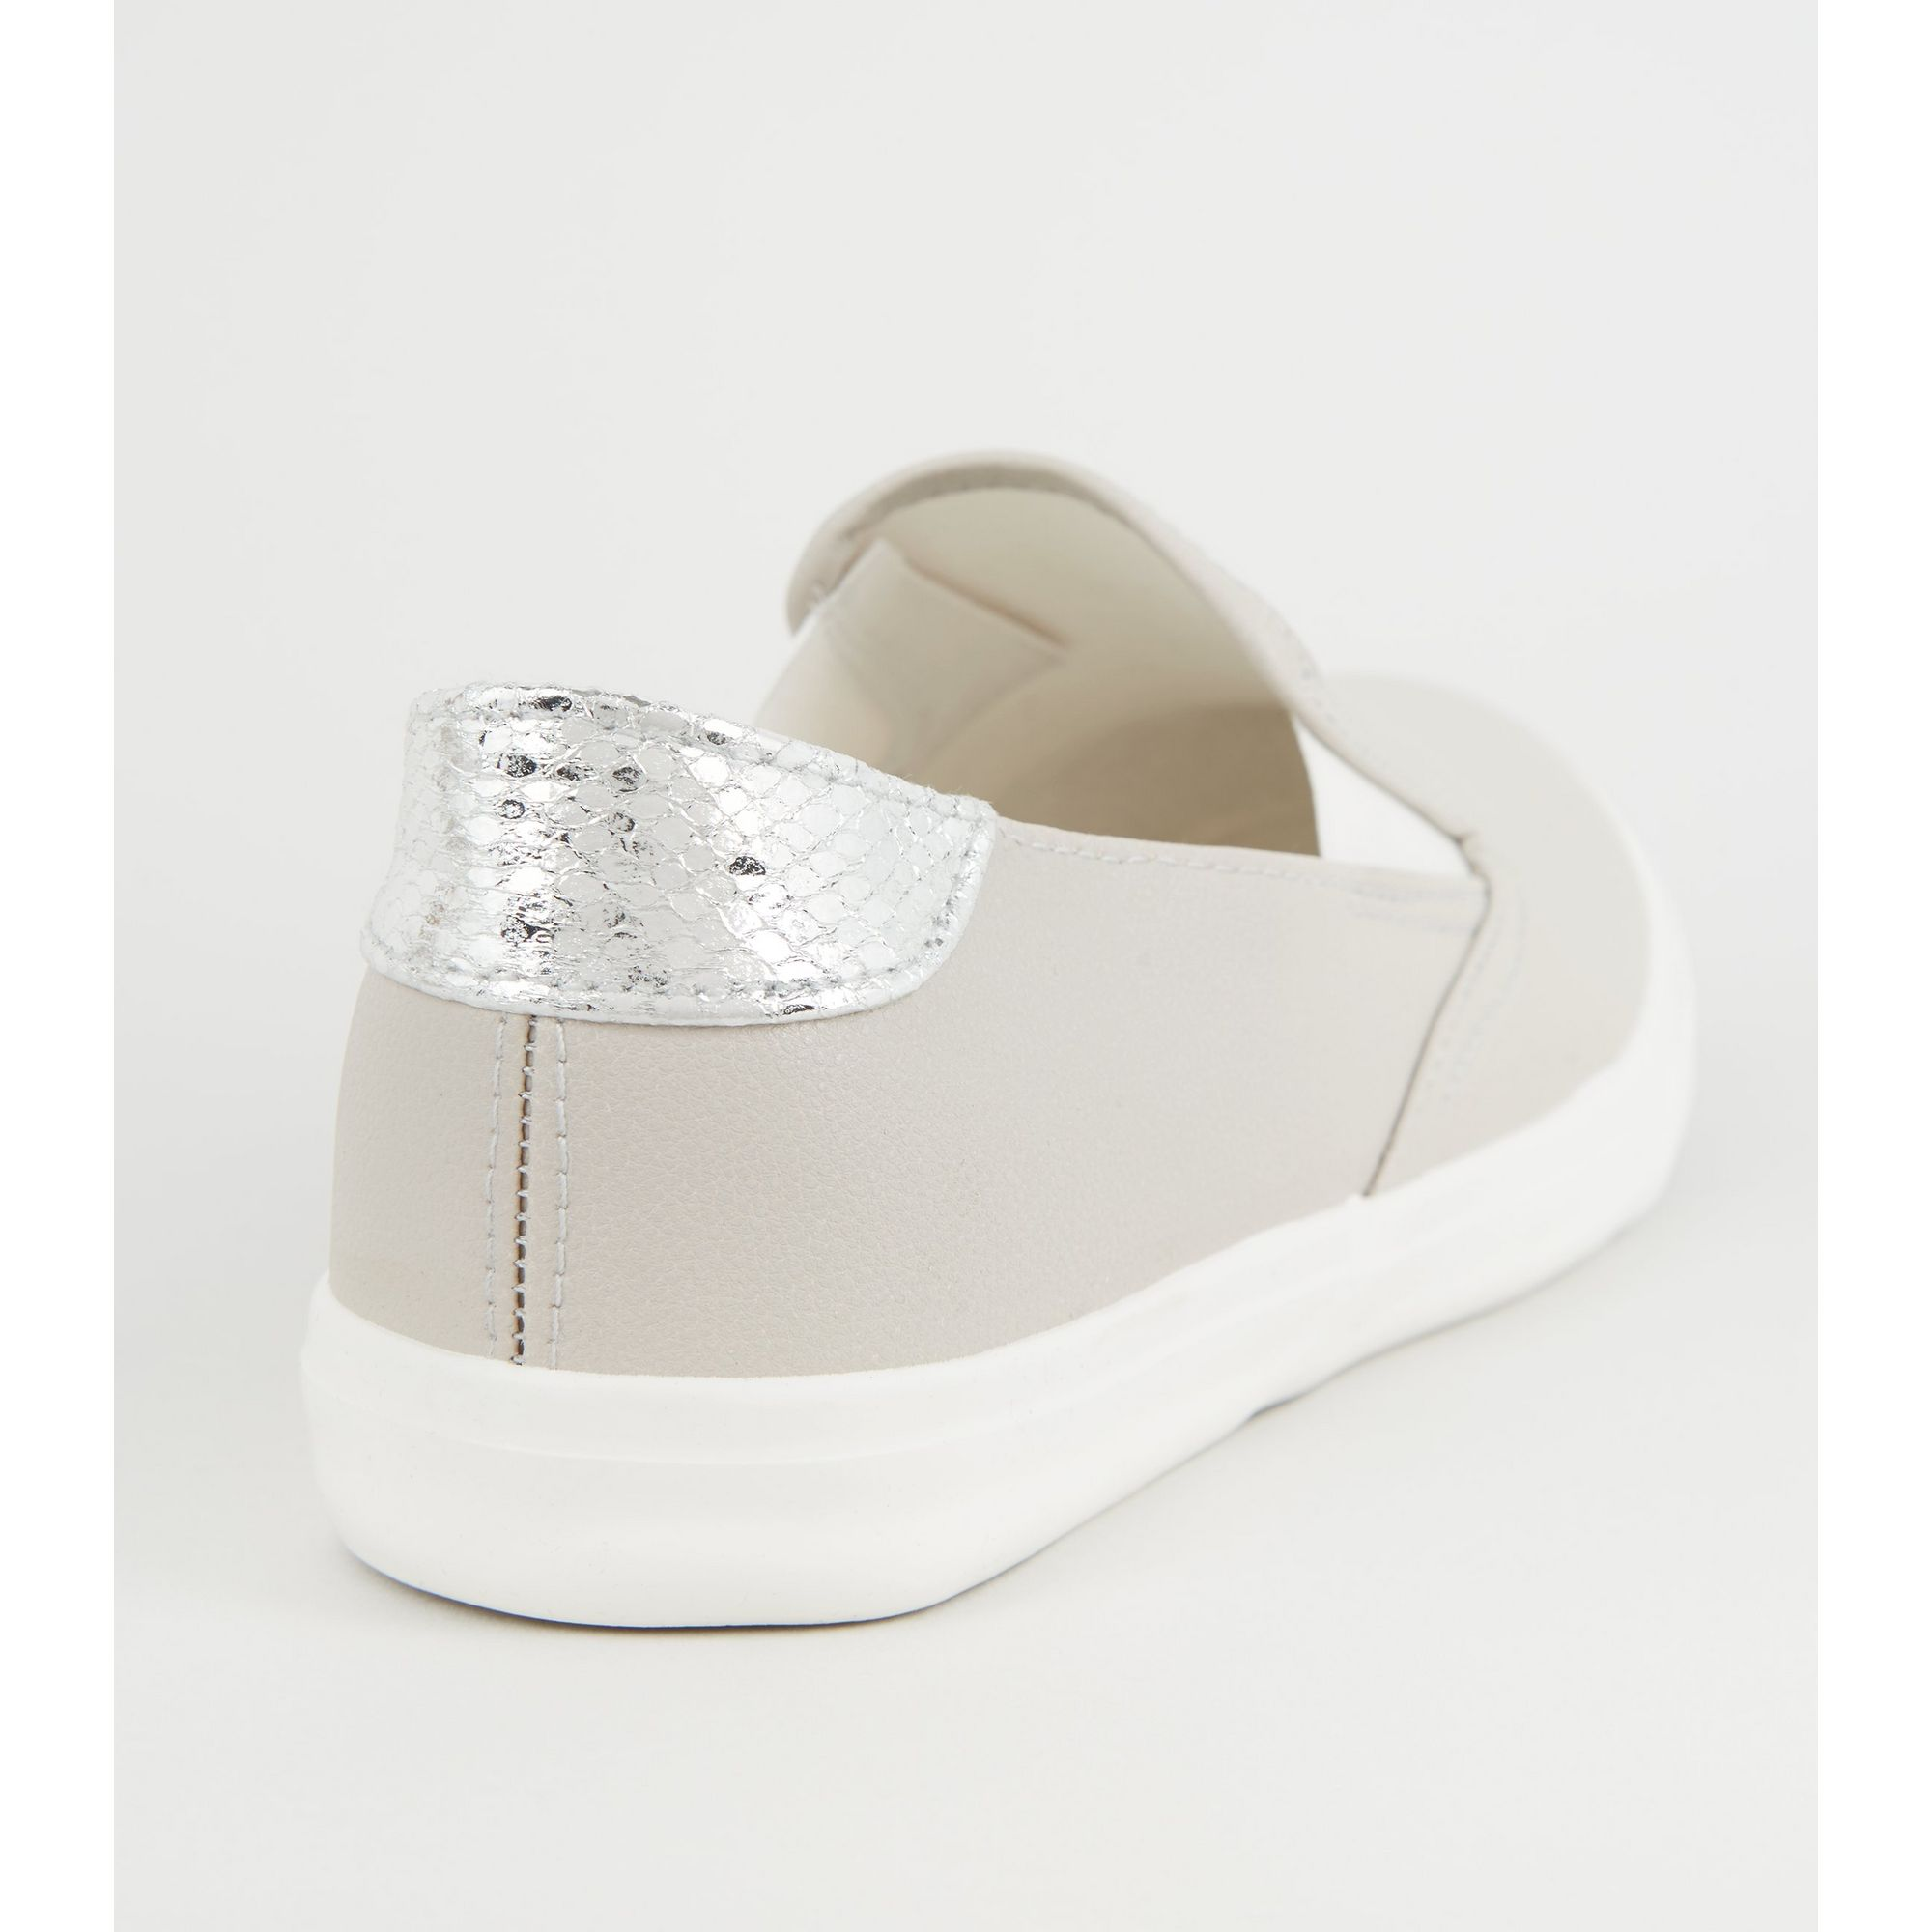 New-Look-Wide-Fit-Leather-Look-Slip-On-Trainers thumbnail 10